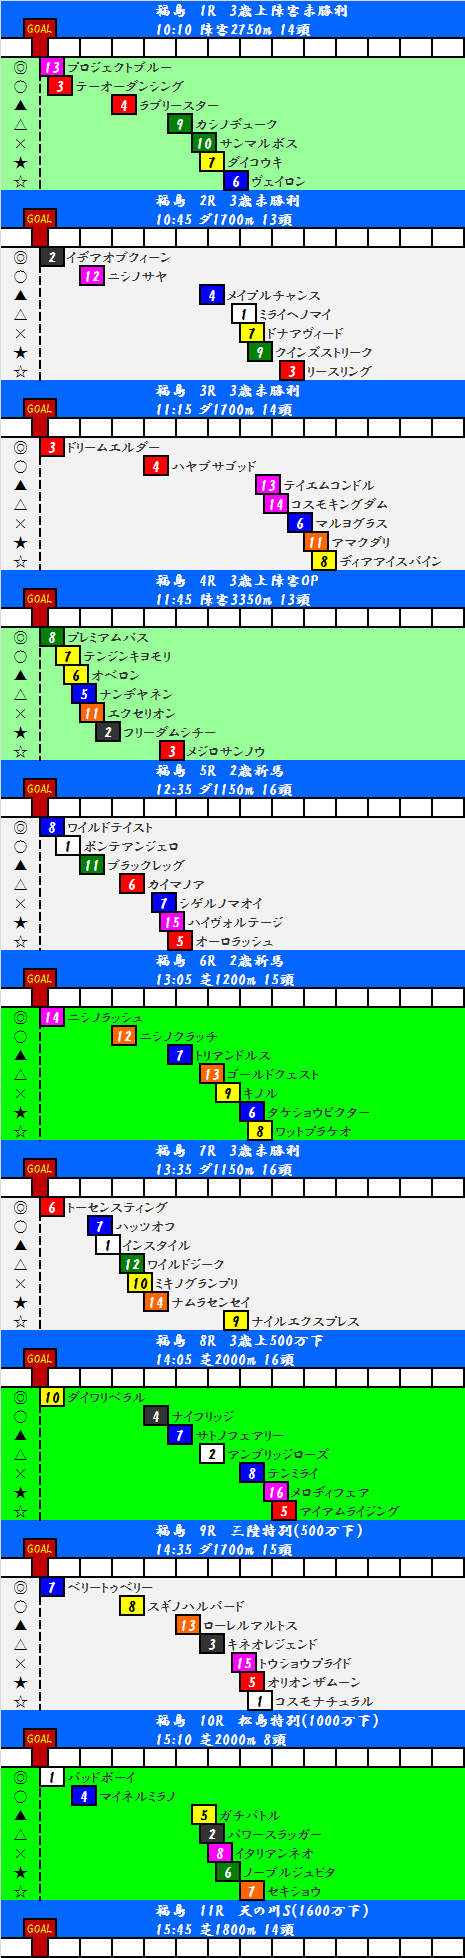 201407121.png